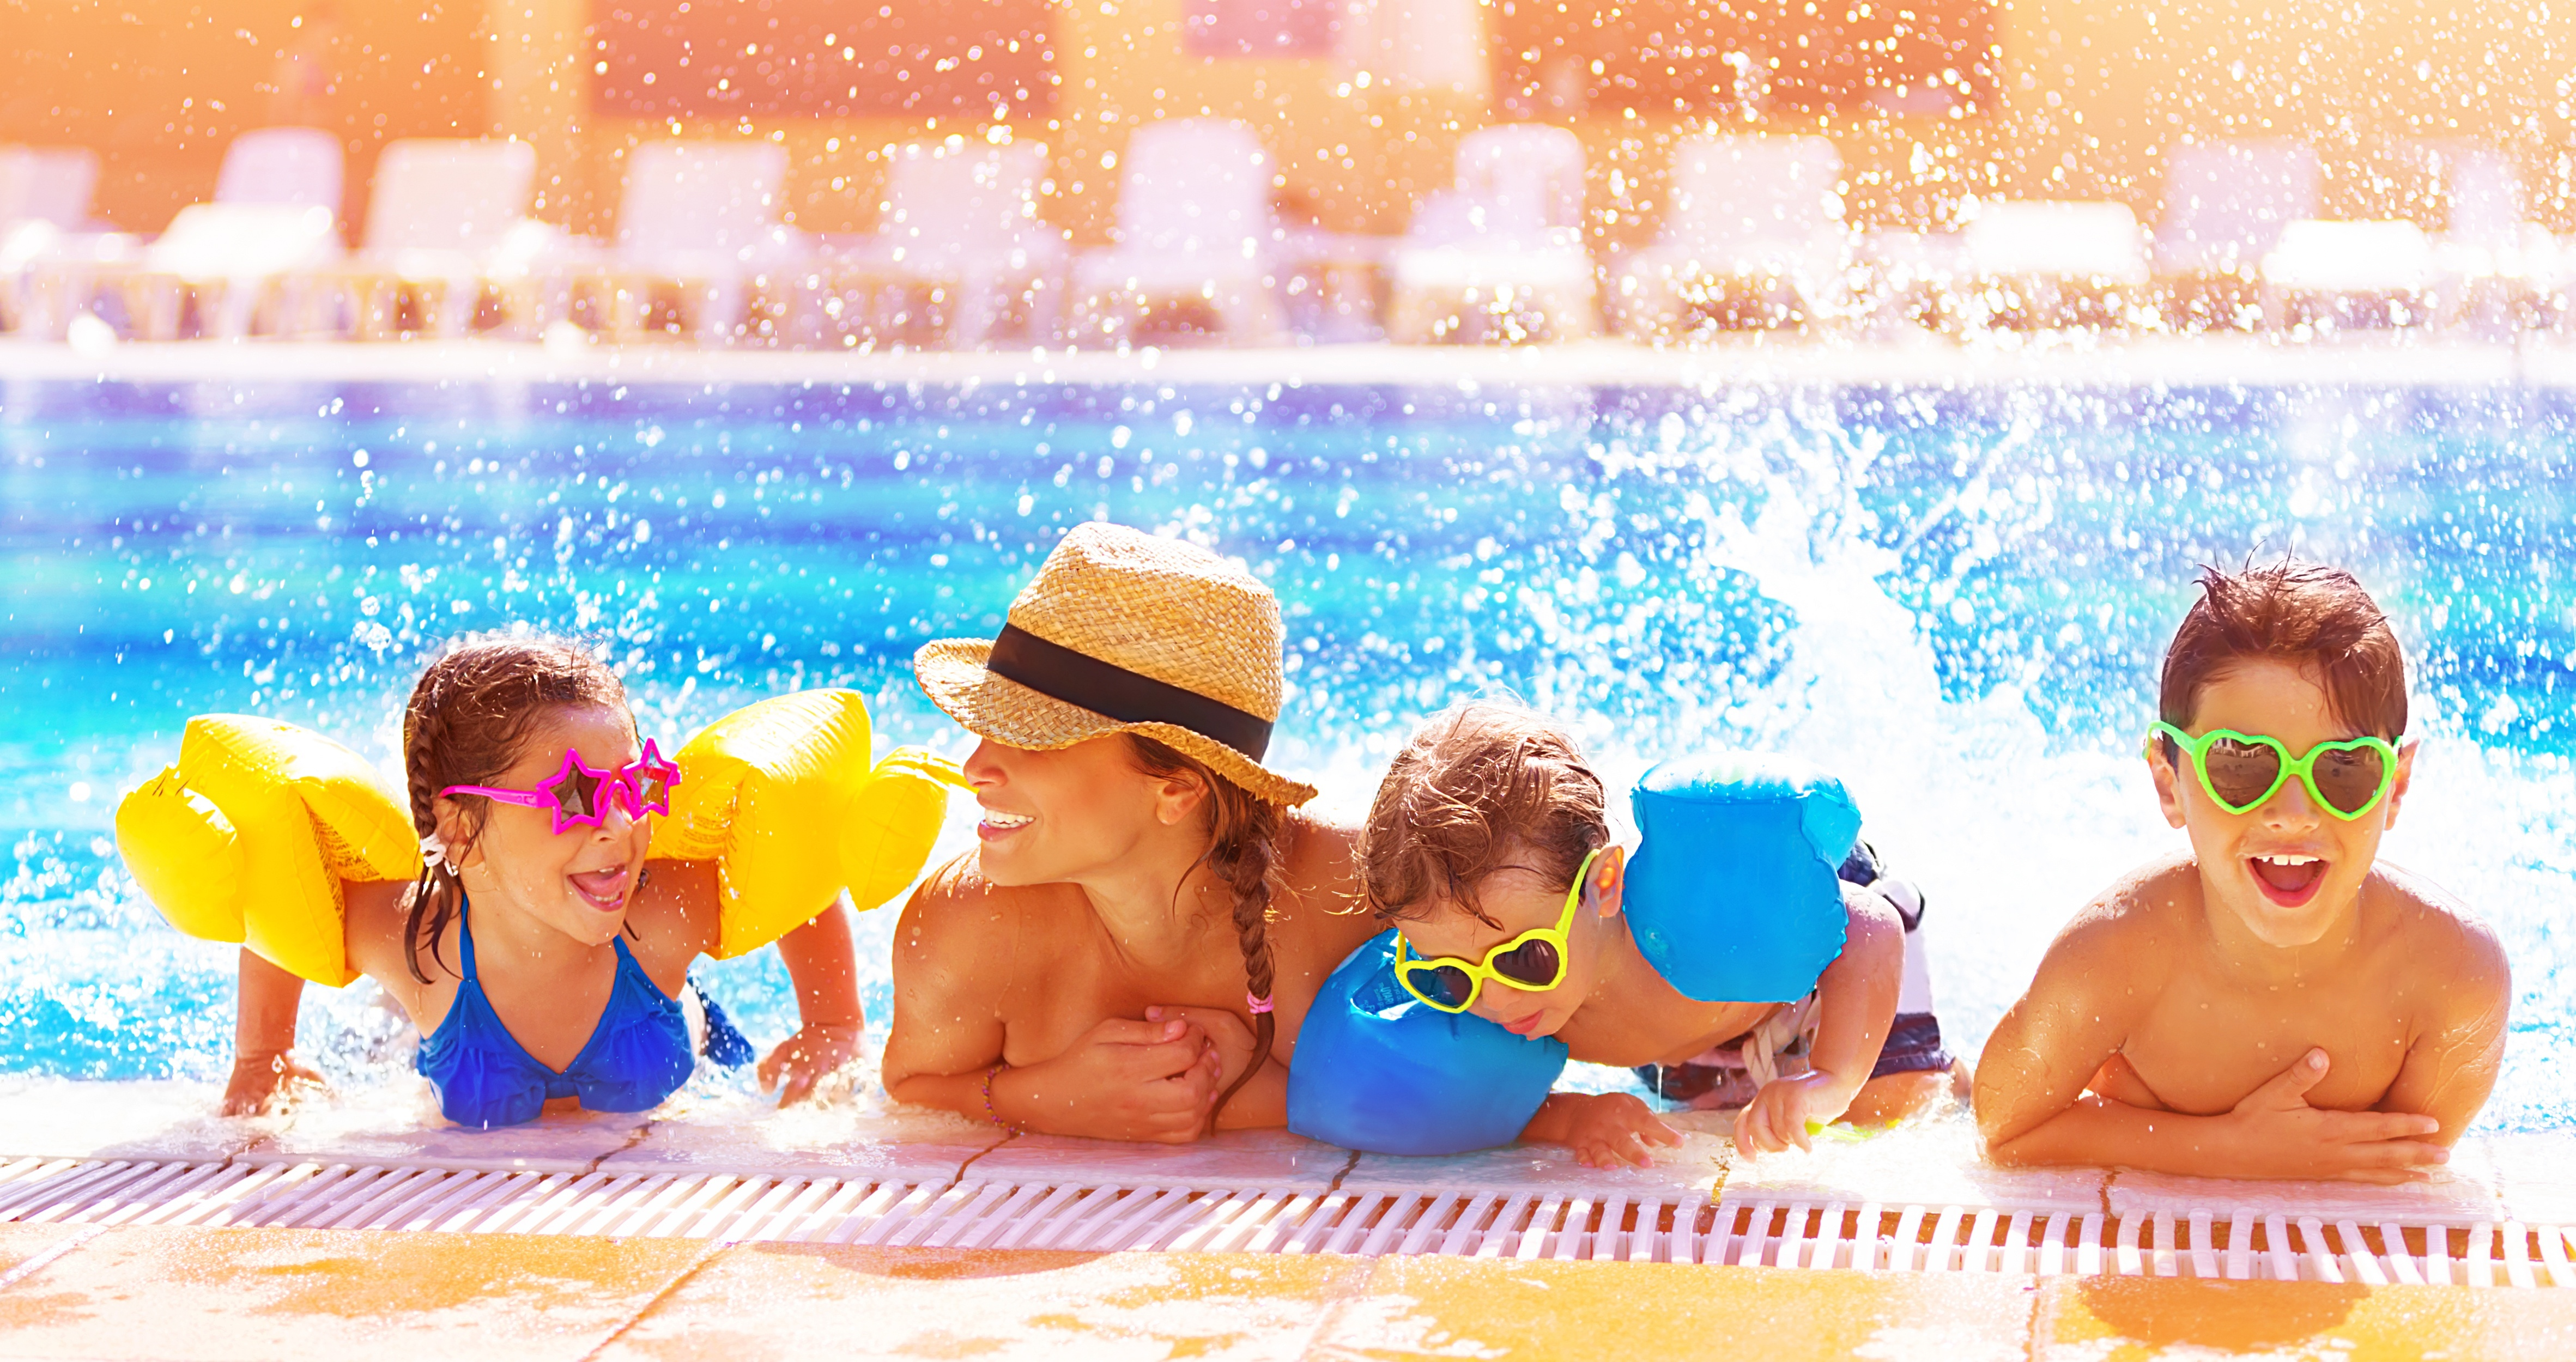 Mom and three children having fun in the pool